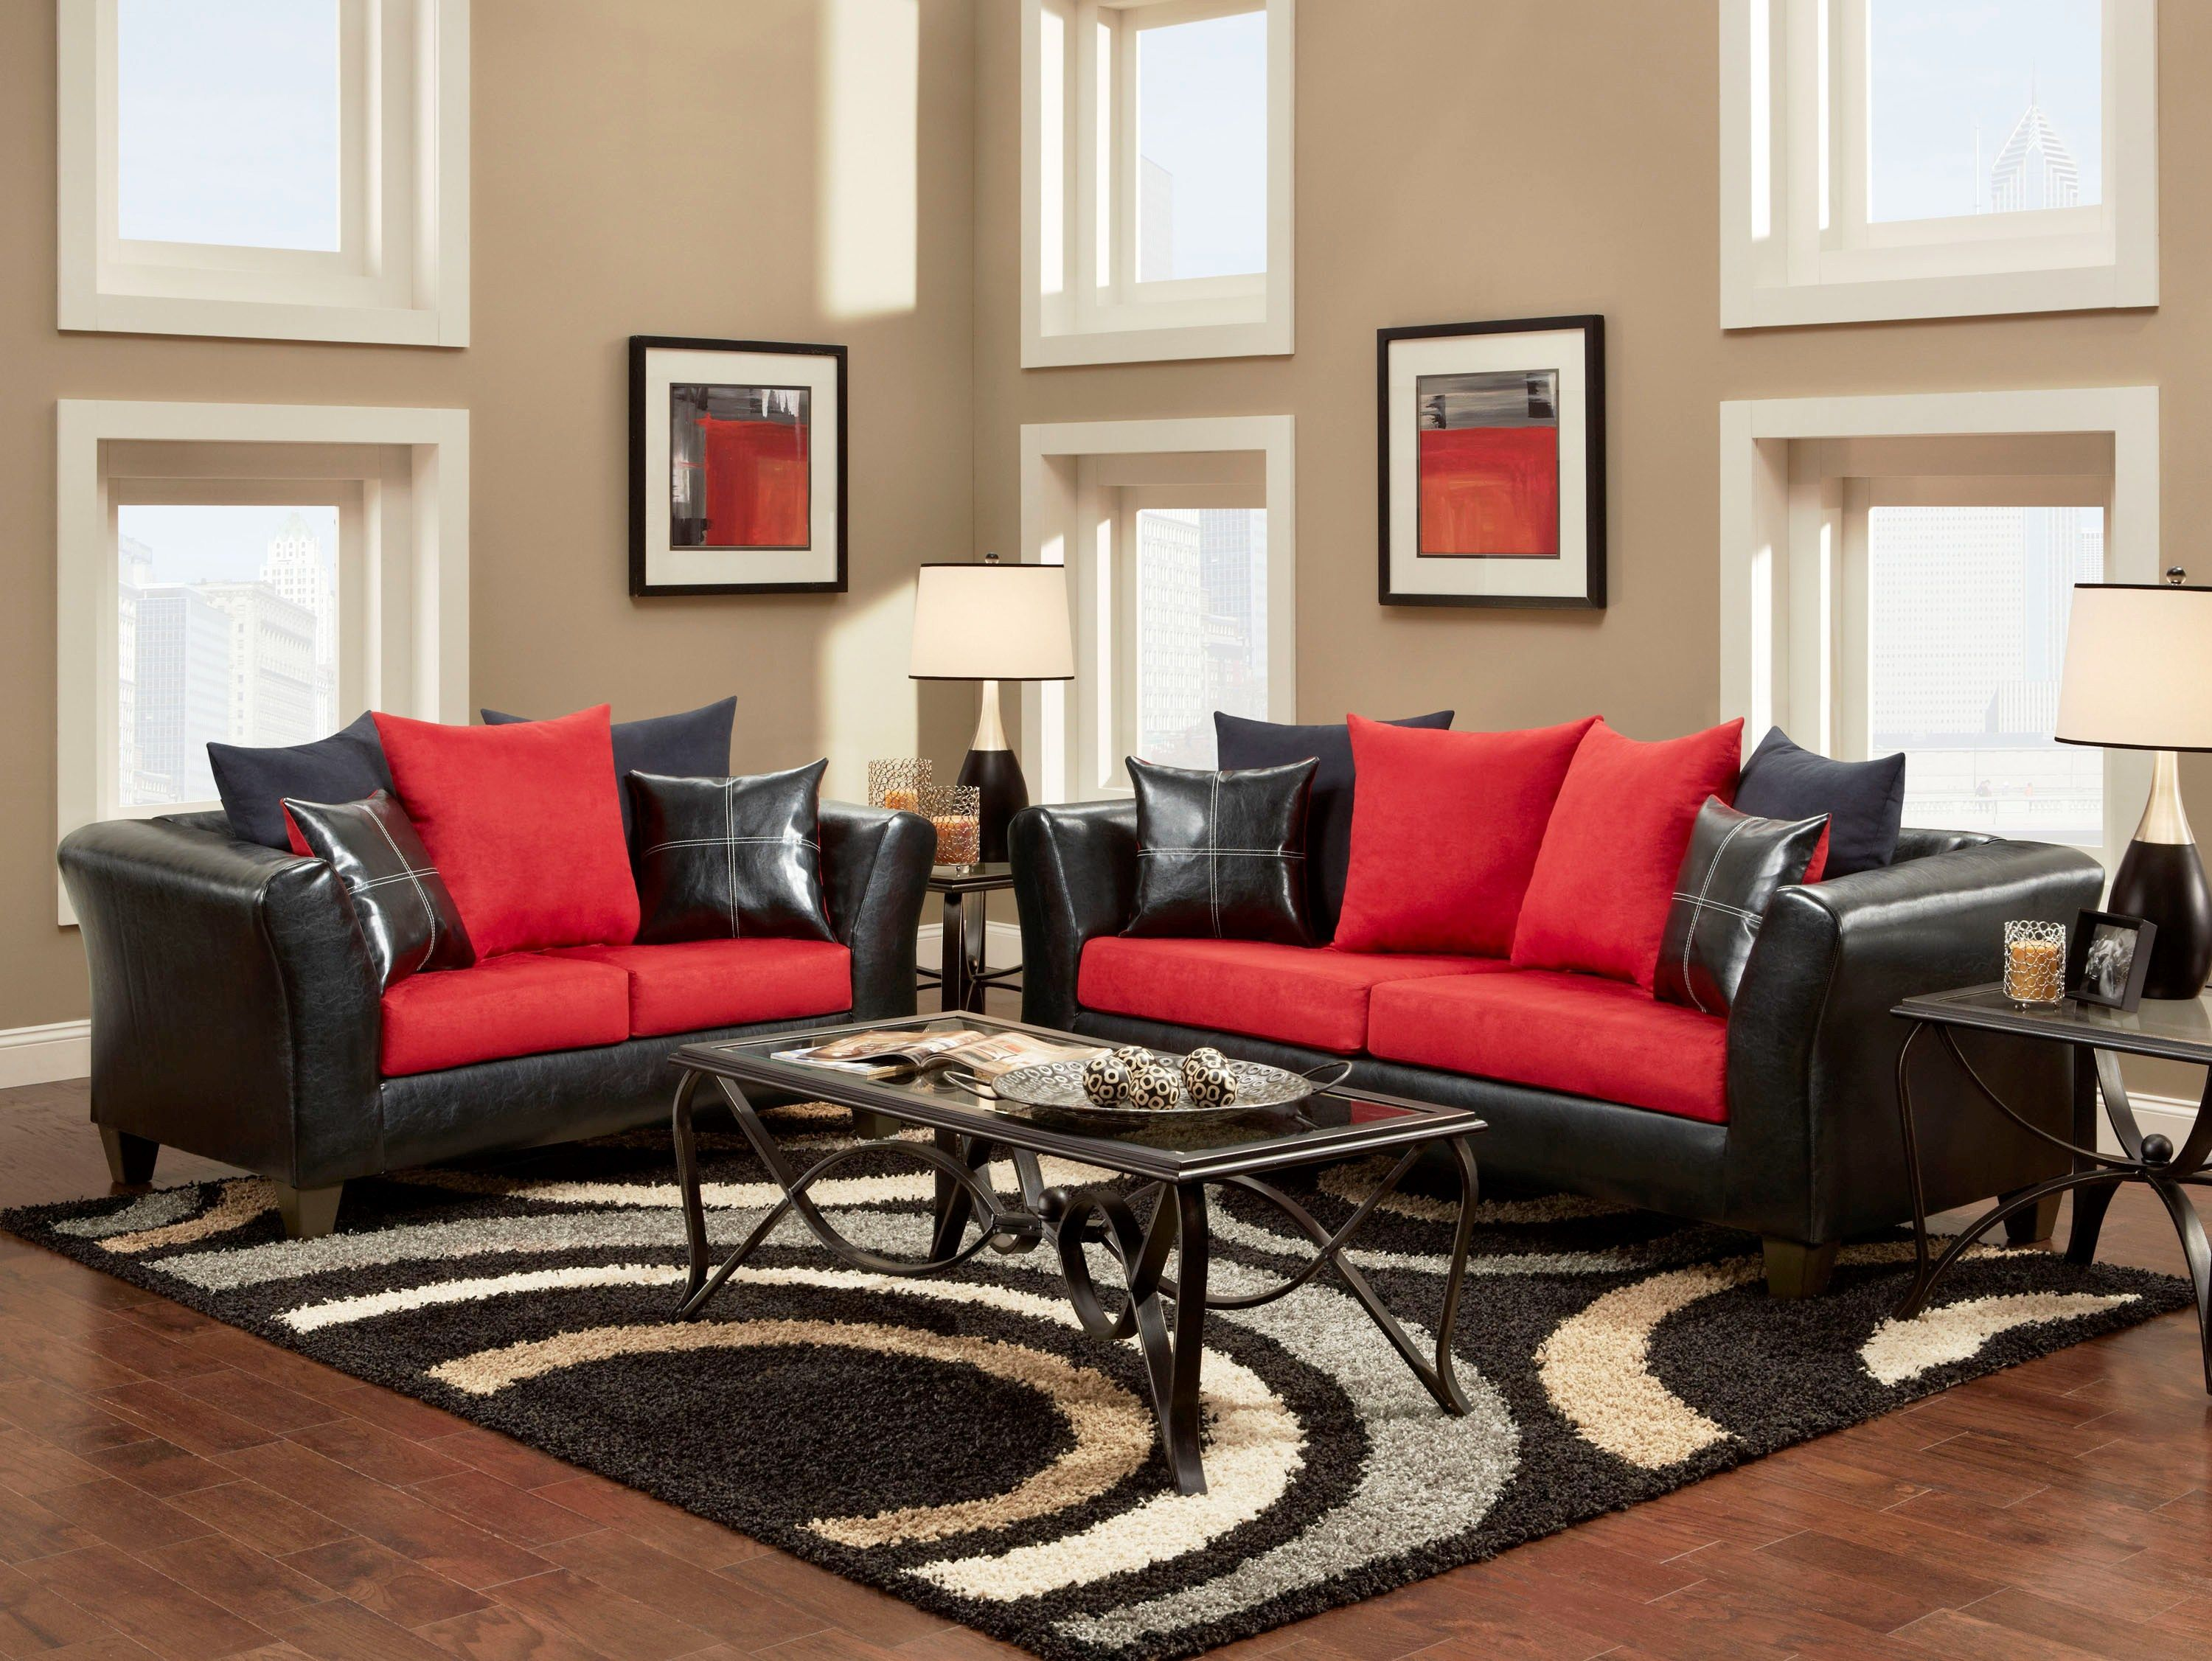 Living Room Decorations In Kenya In 2020 Red Living Room Modern Kitchen Decor Decoration Cu In 2020 Red Living Room Decor Burgundy Living Room Black Living Room